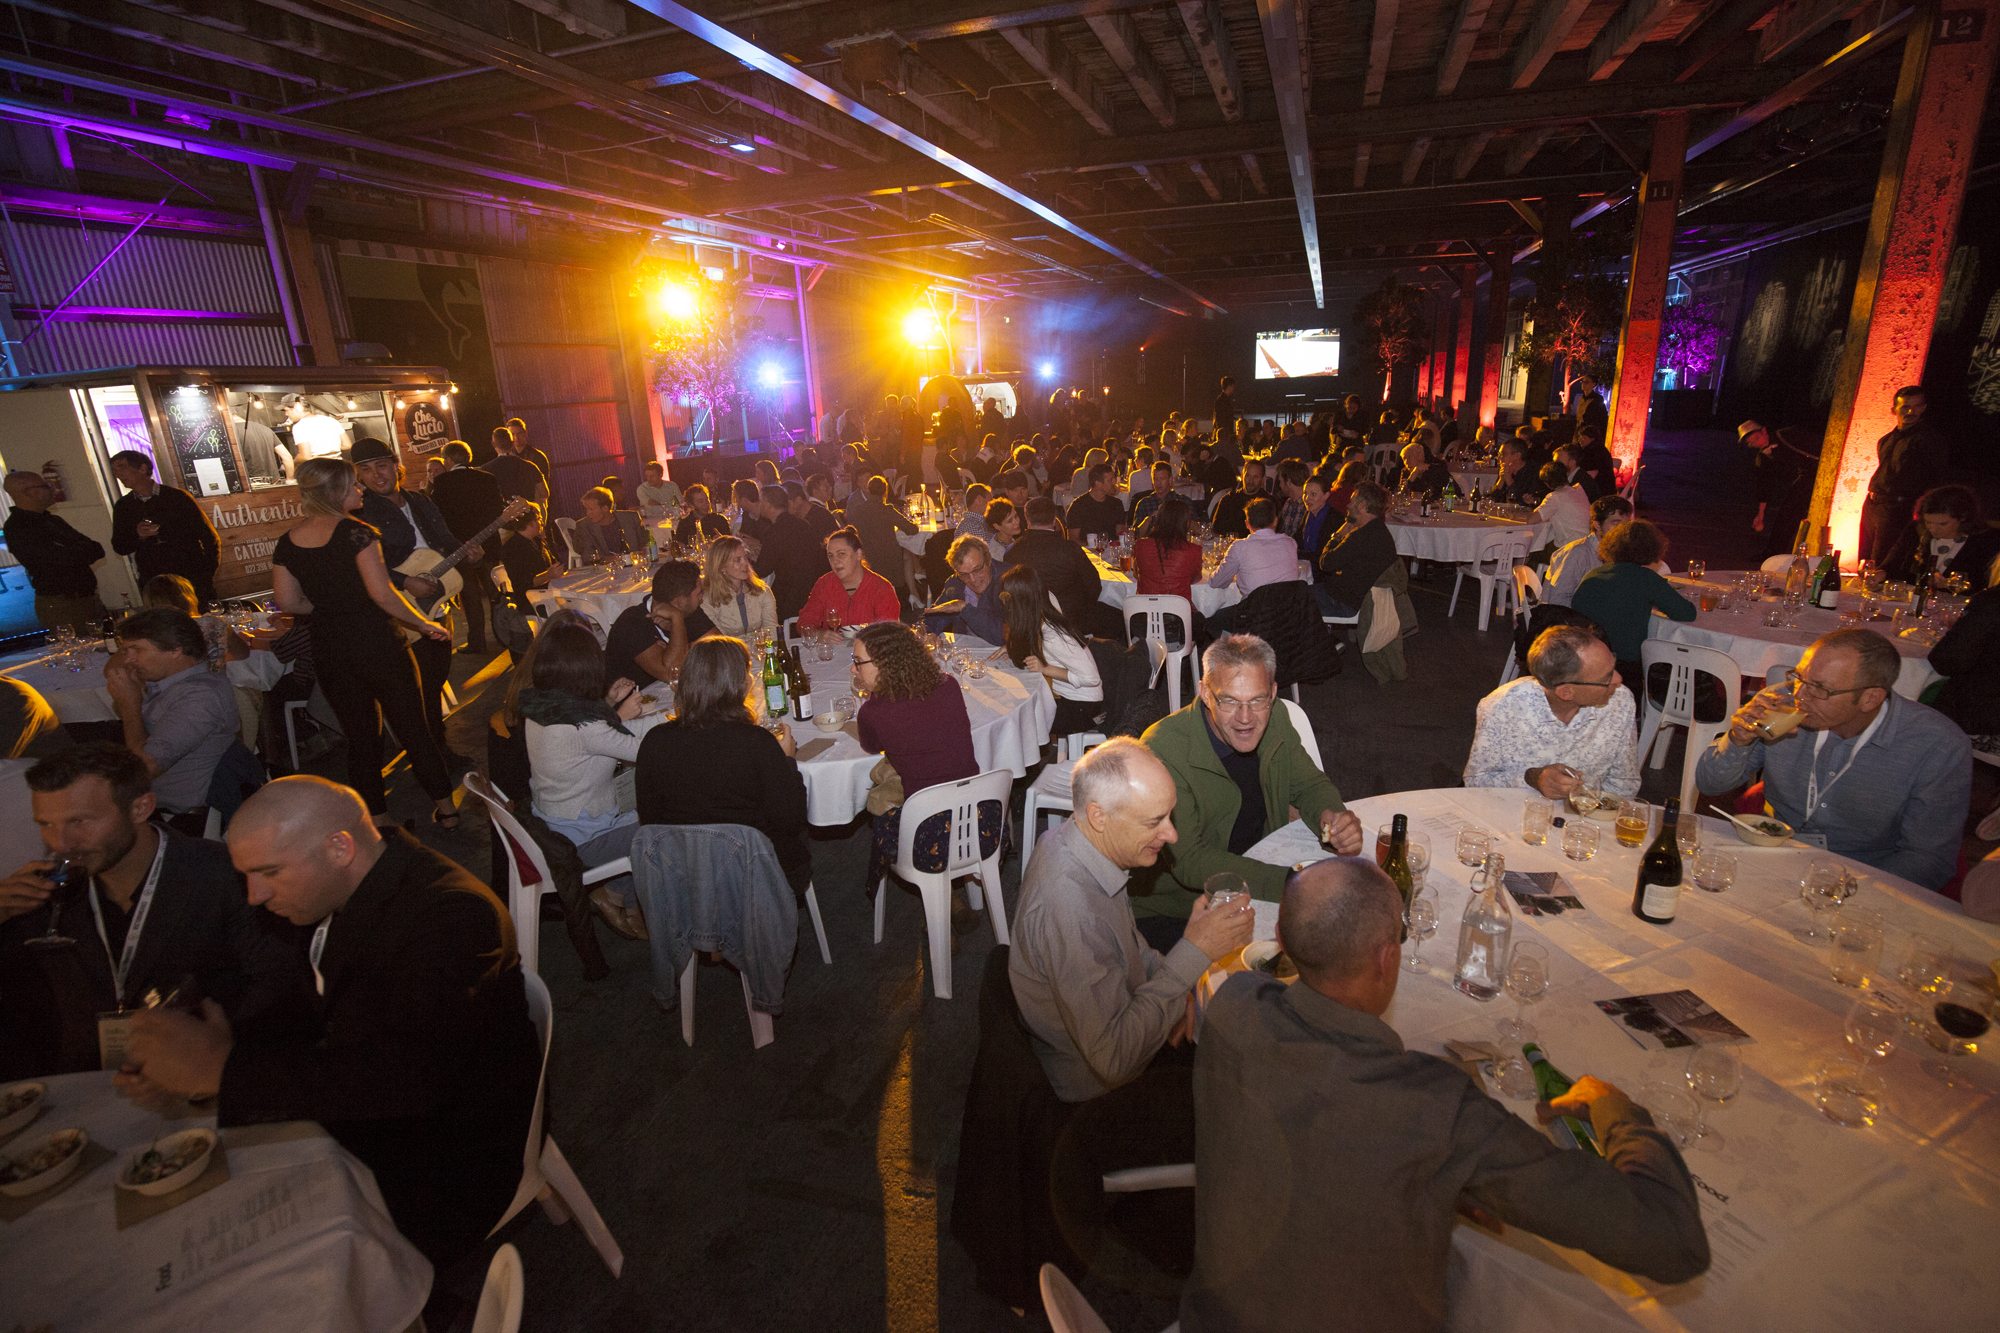 Conference dinner held at Shed 10 - with food trucks and street entertainment bringing the big space to life.